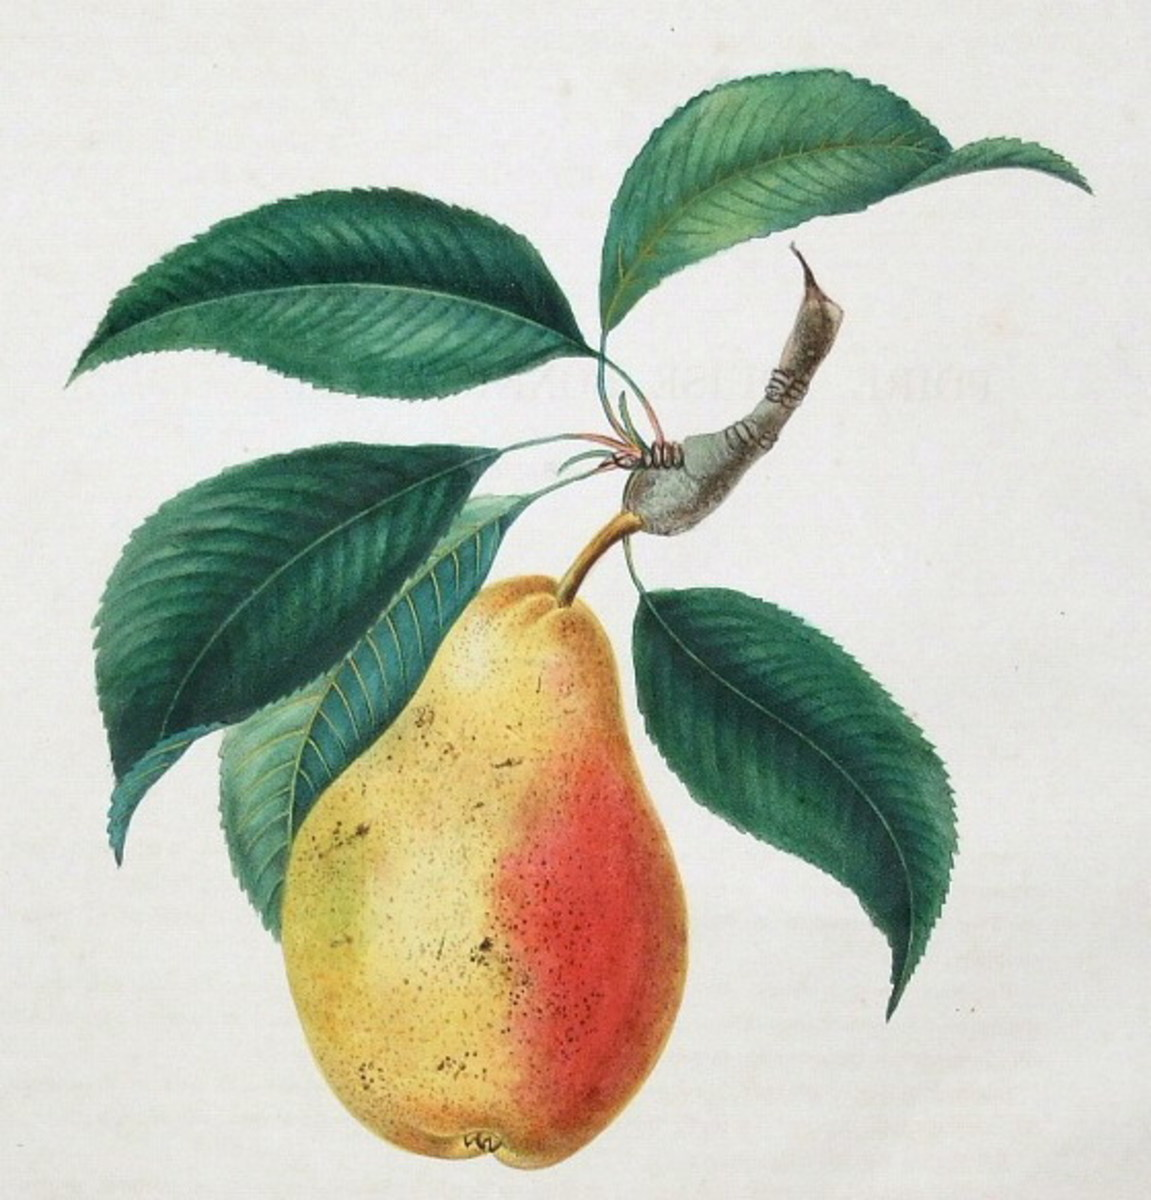 Vintage fruit: pear with leaves